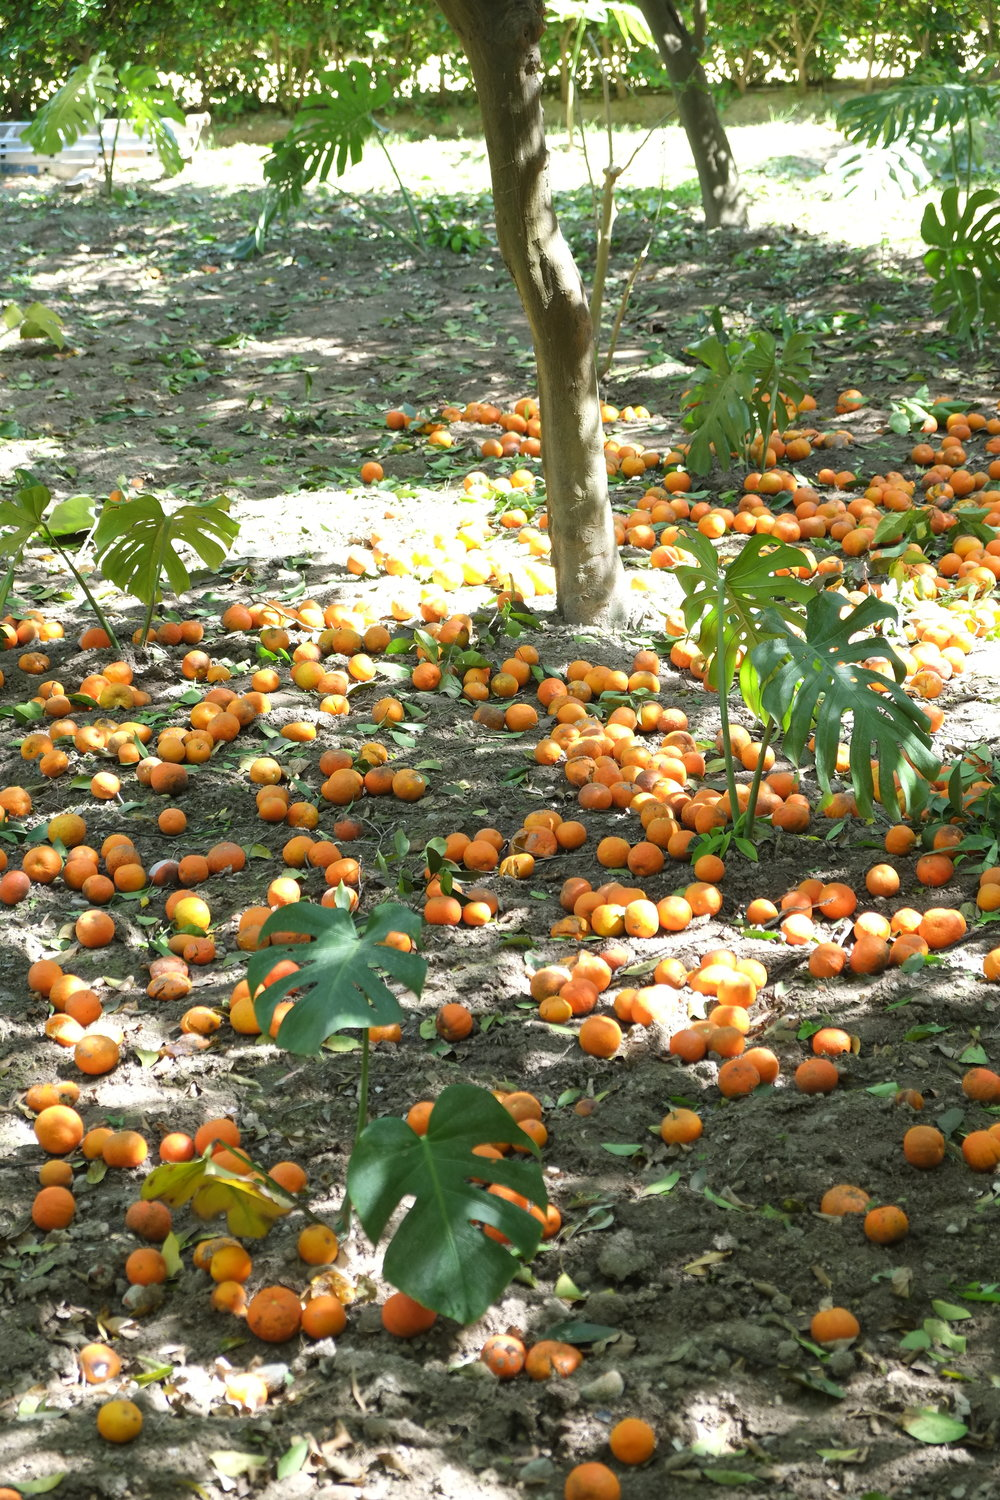 Oranges of Seville